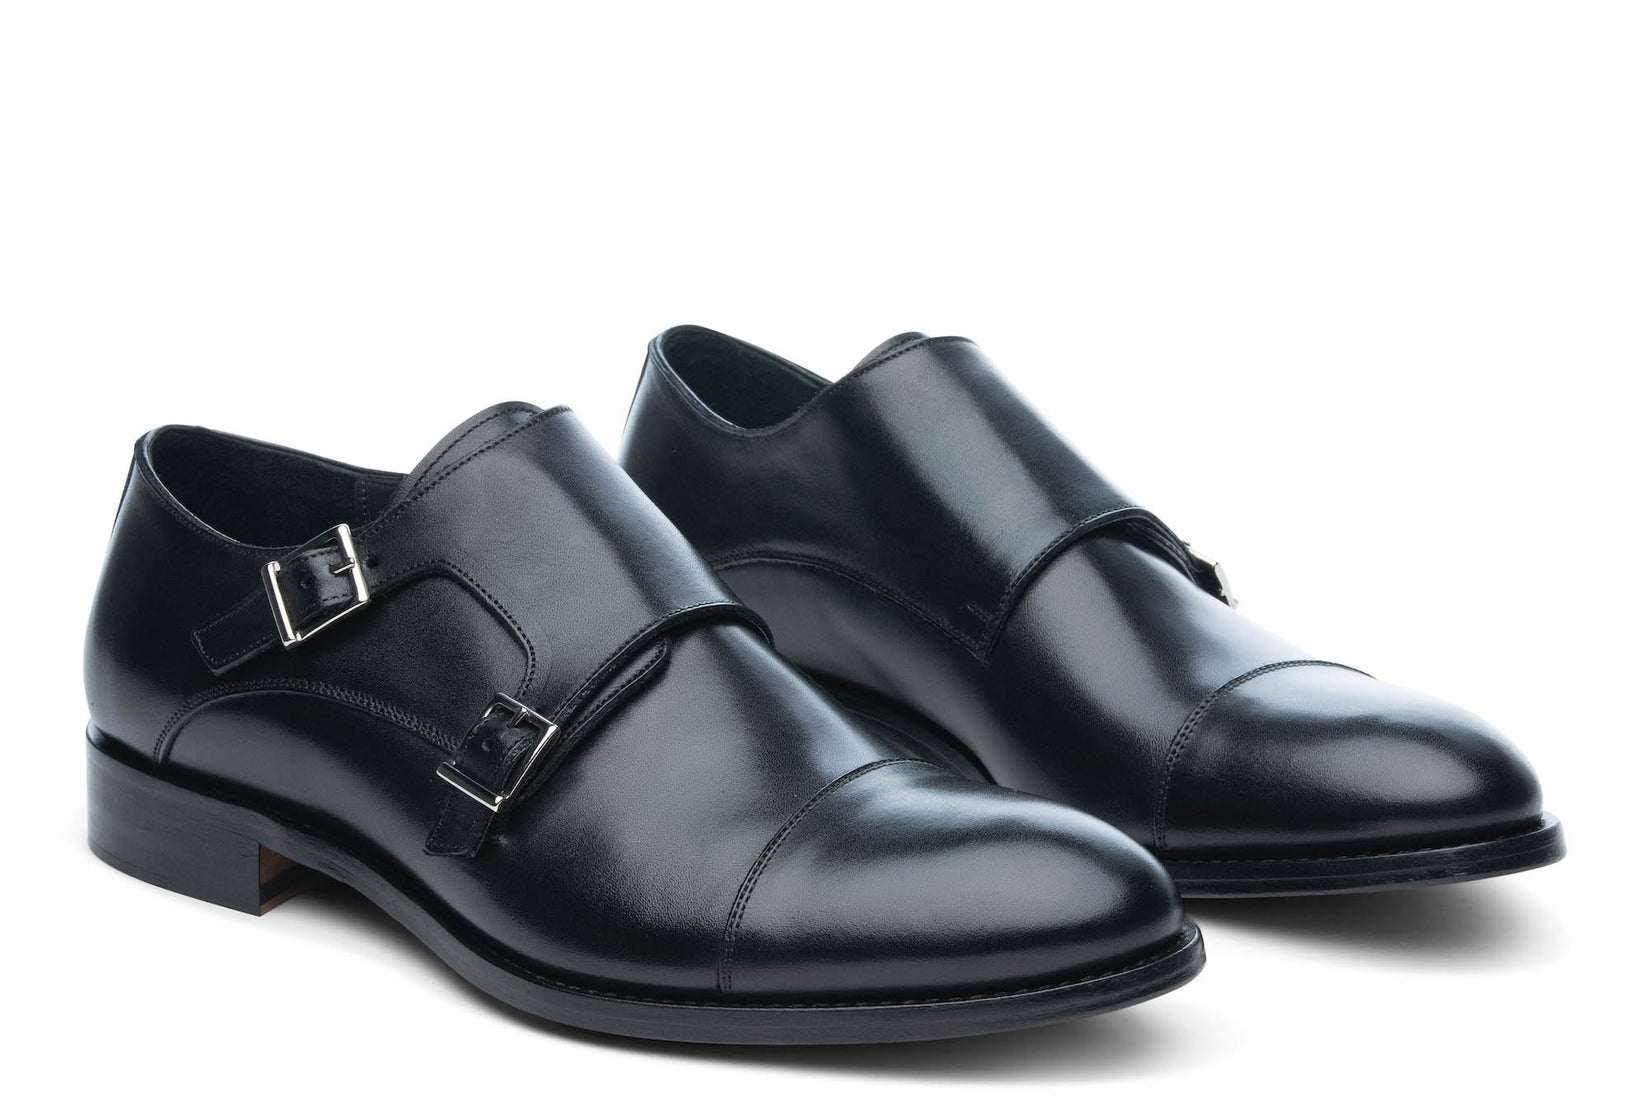 Thursday Double Monkstrap in Black (FINAL SALE)